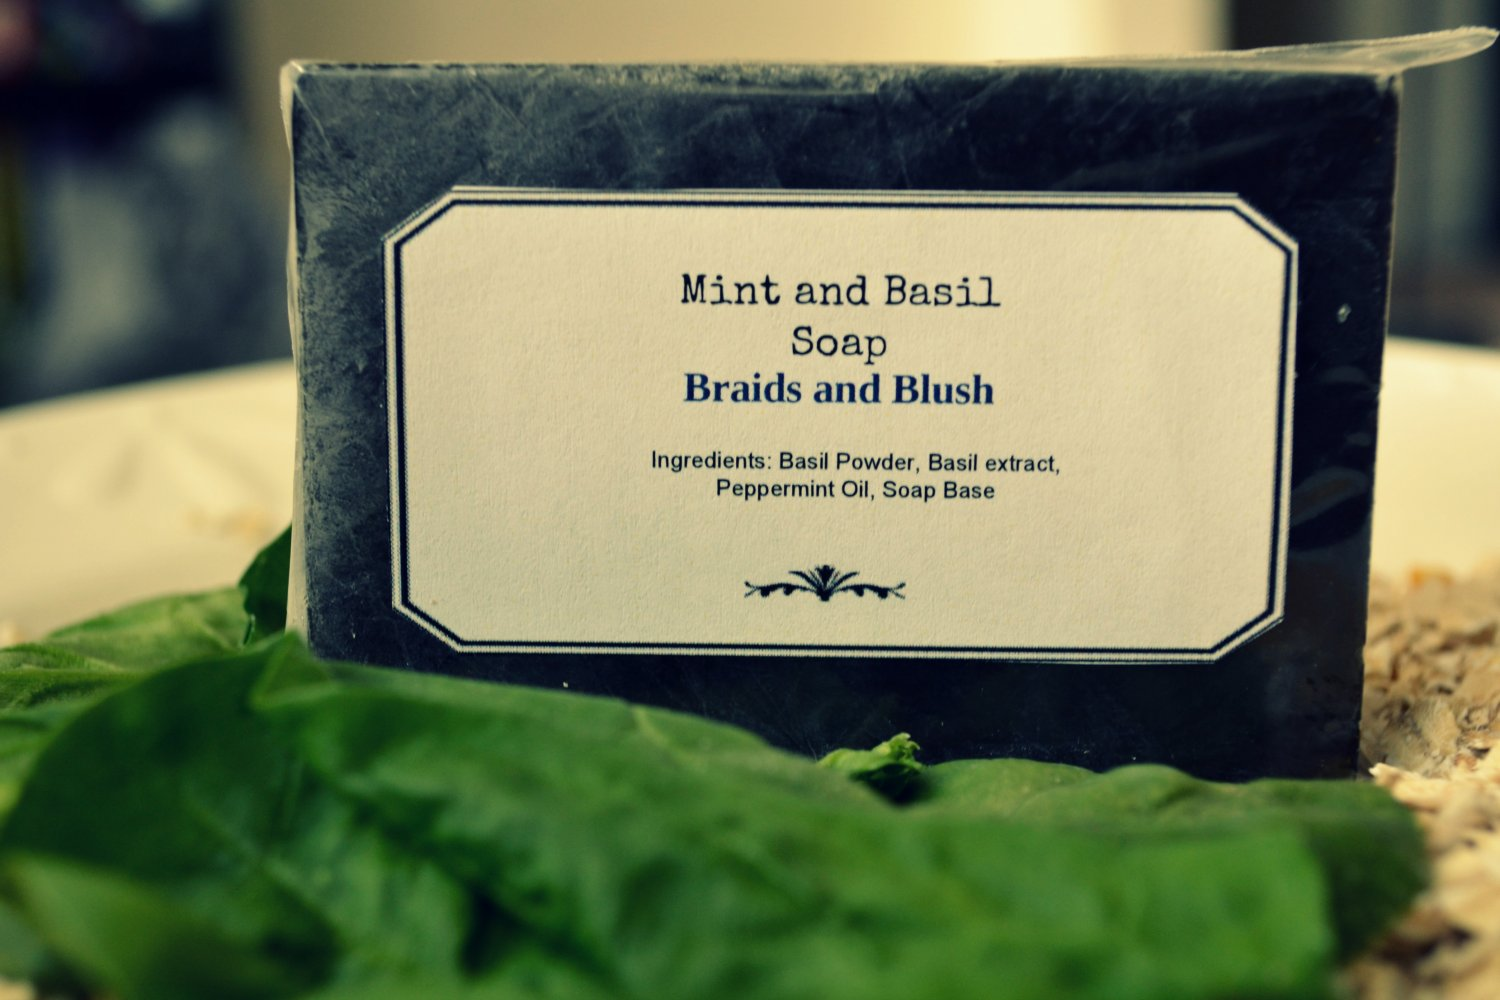 Refreshing Antibacterial Mint and Basil Soap/Refreshing/Healing/Natural/AntiBacterial/Soothing